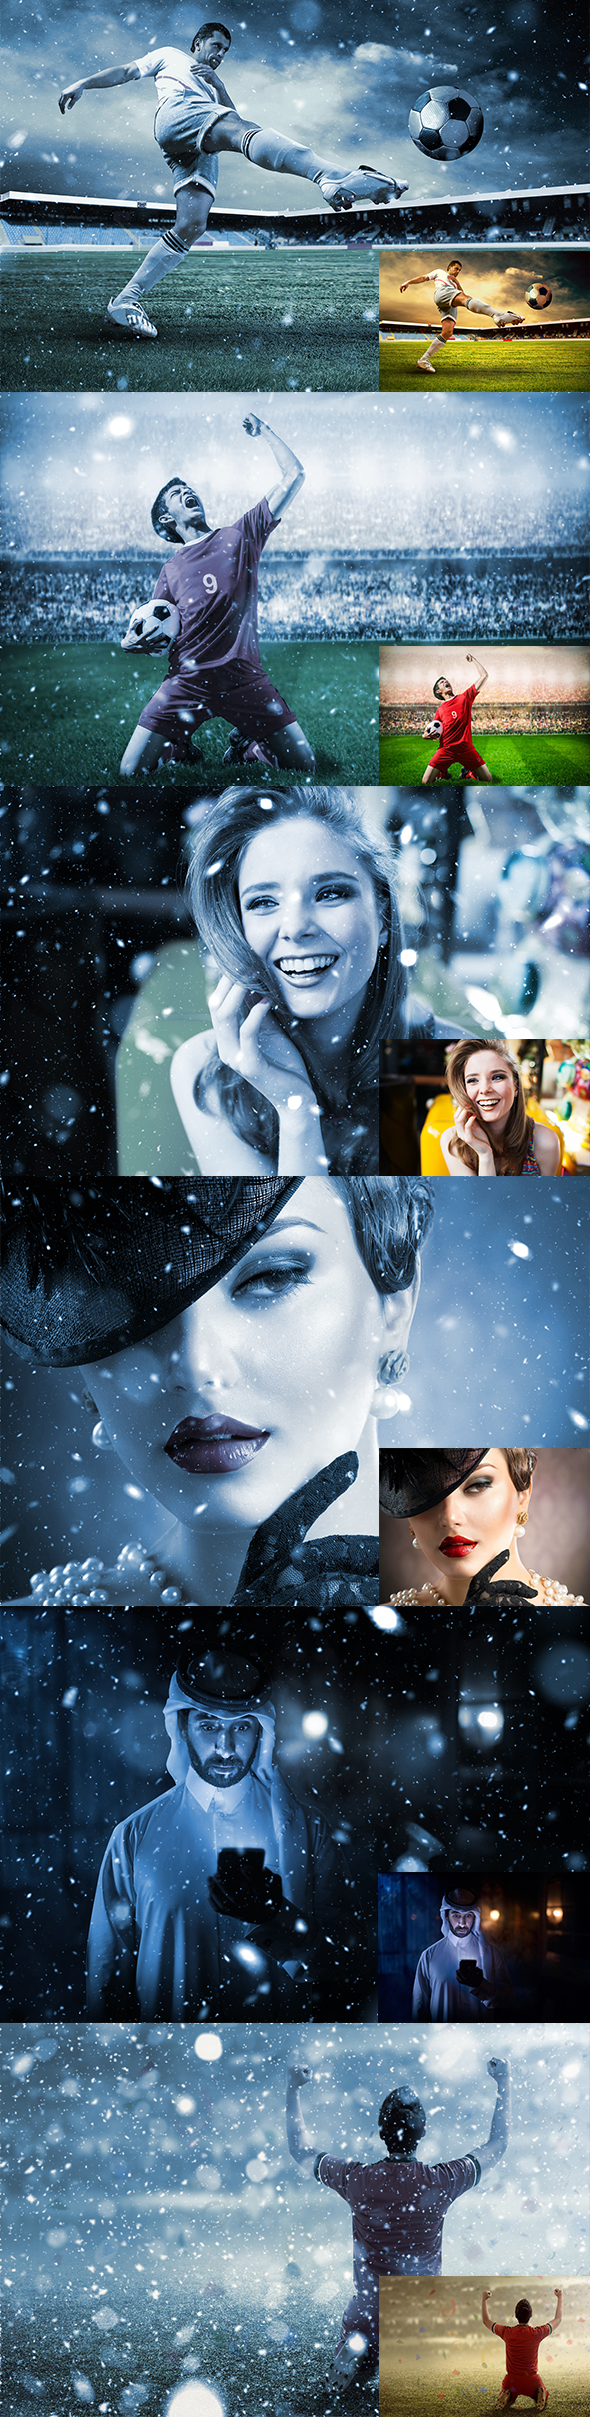 GraphicRiver Let It Snow 2 Photoshop Action 20998966